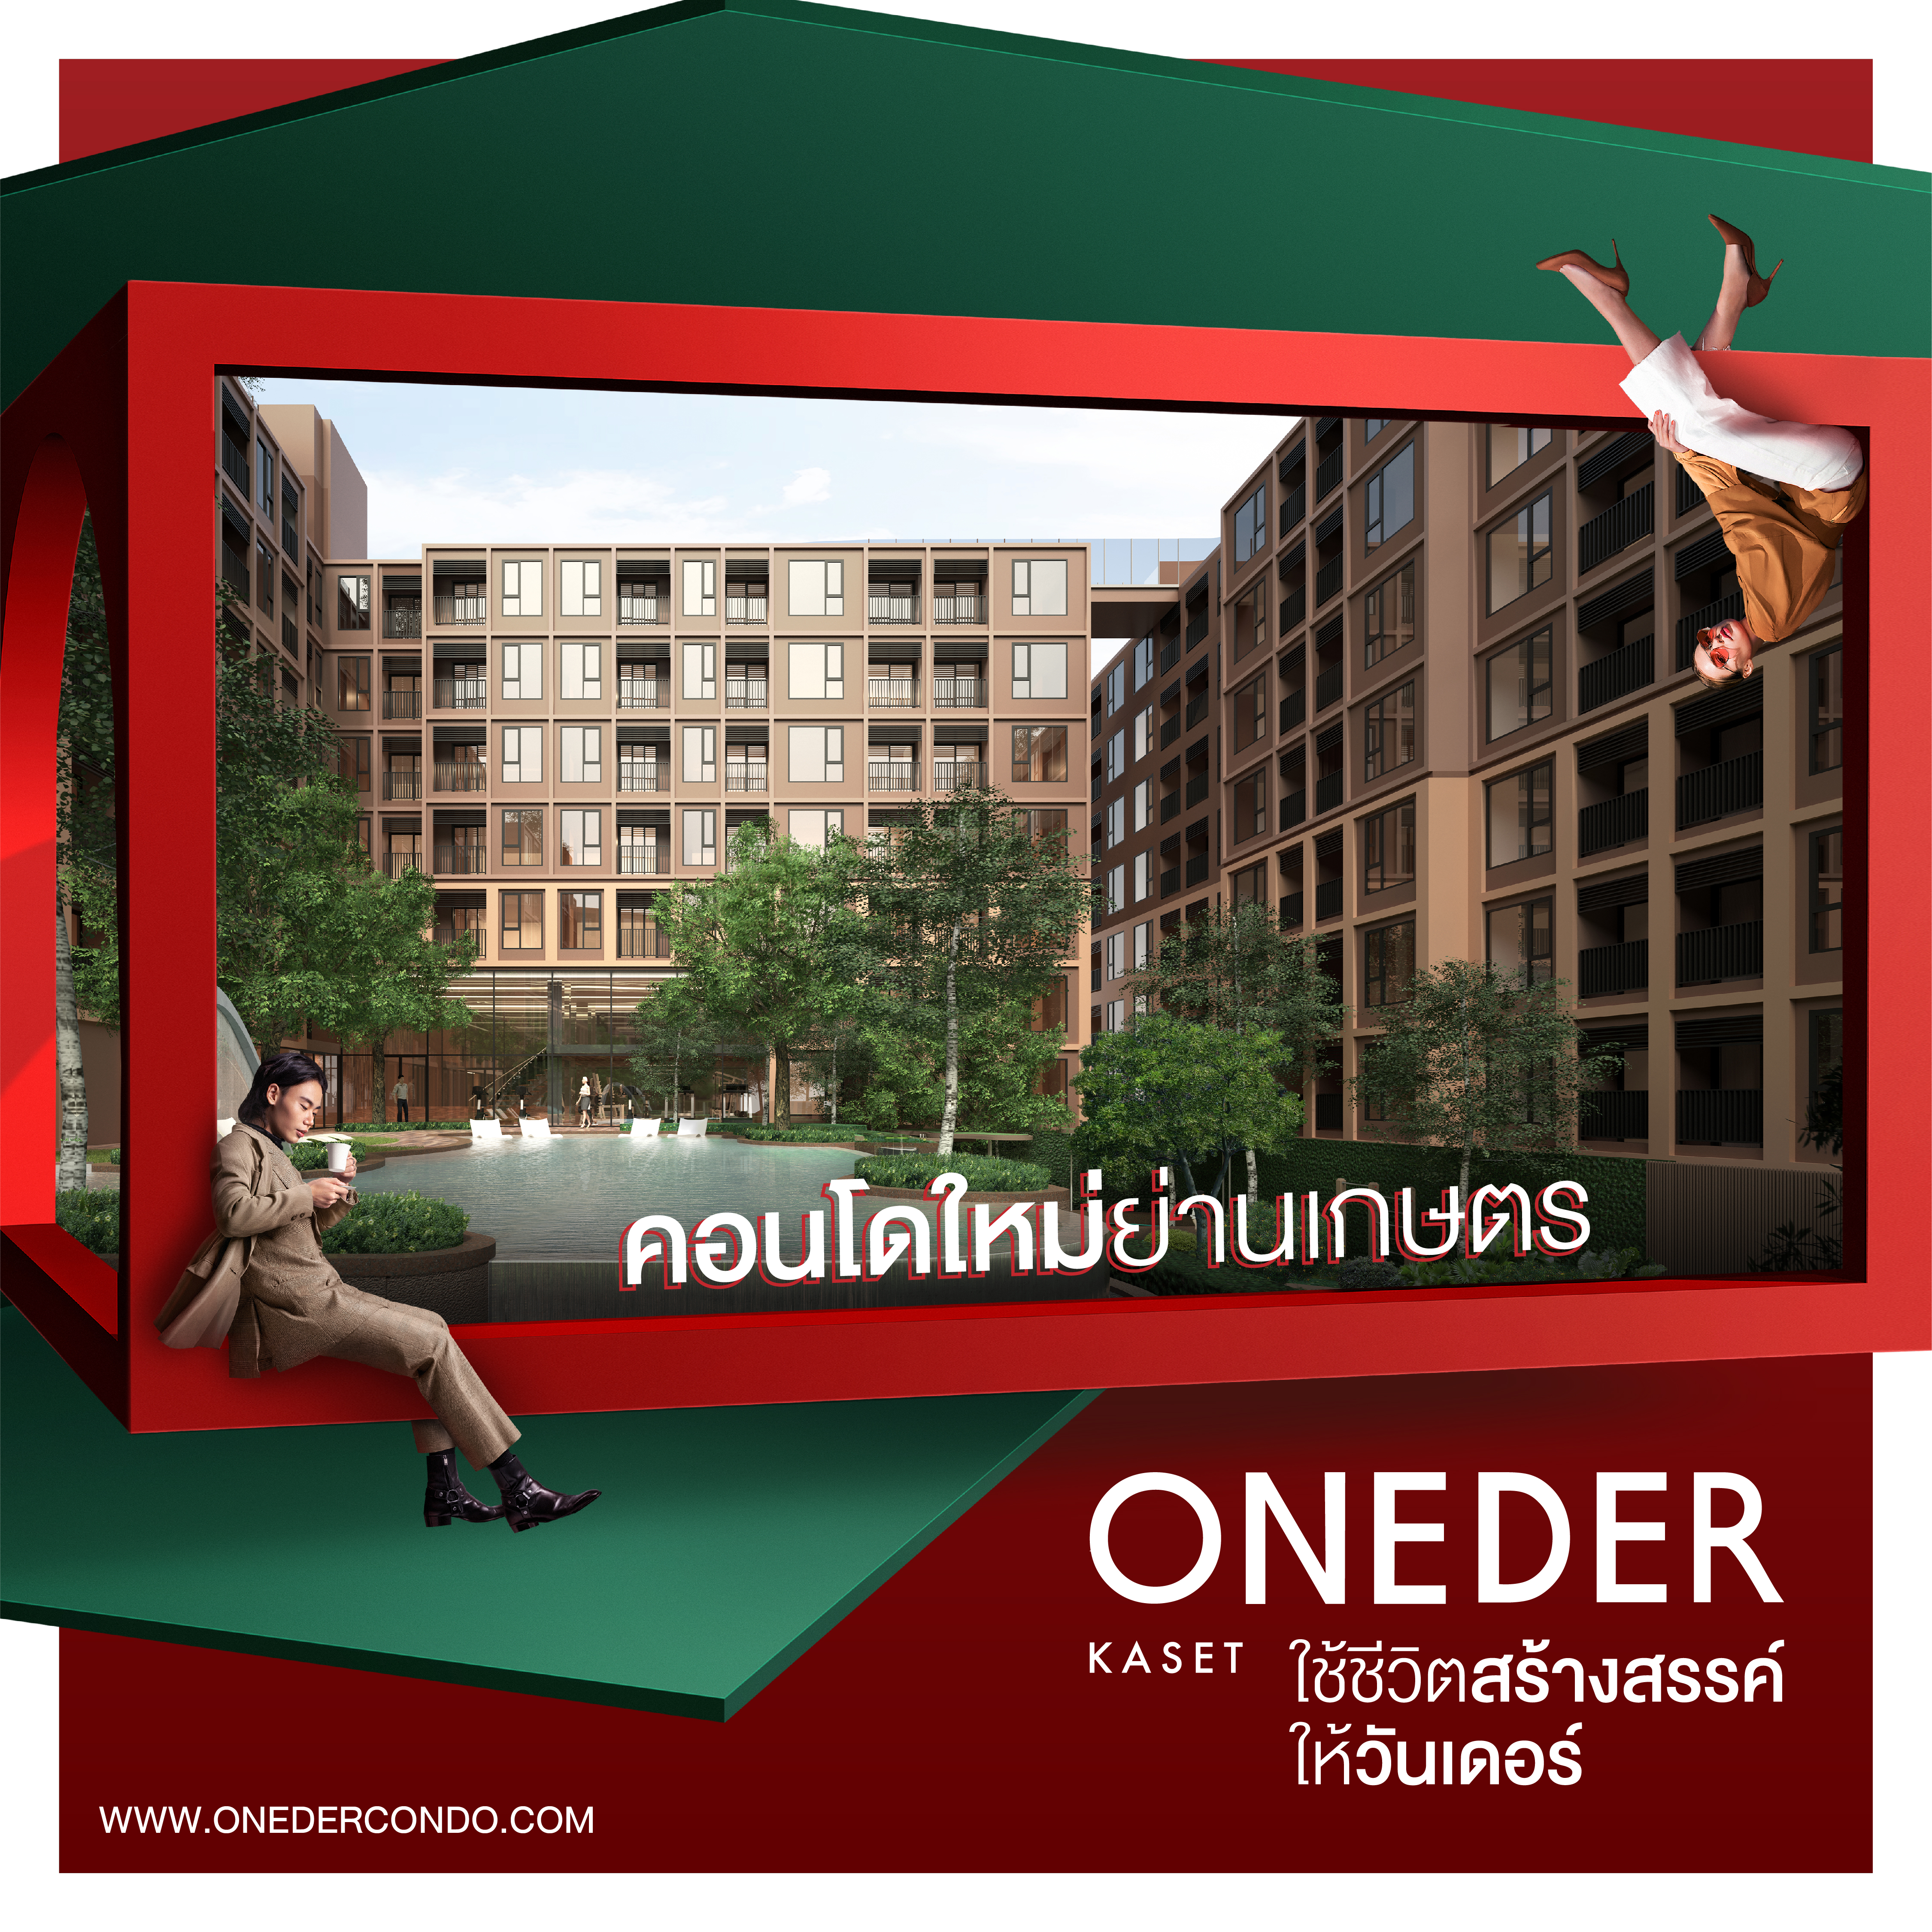 ONEDER - conspiracy creative digital agency